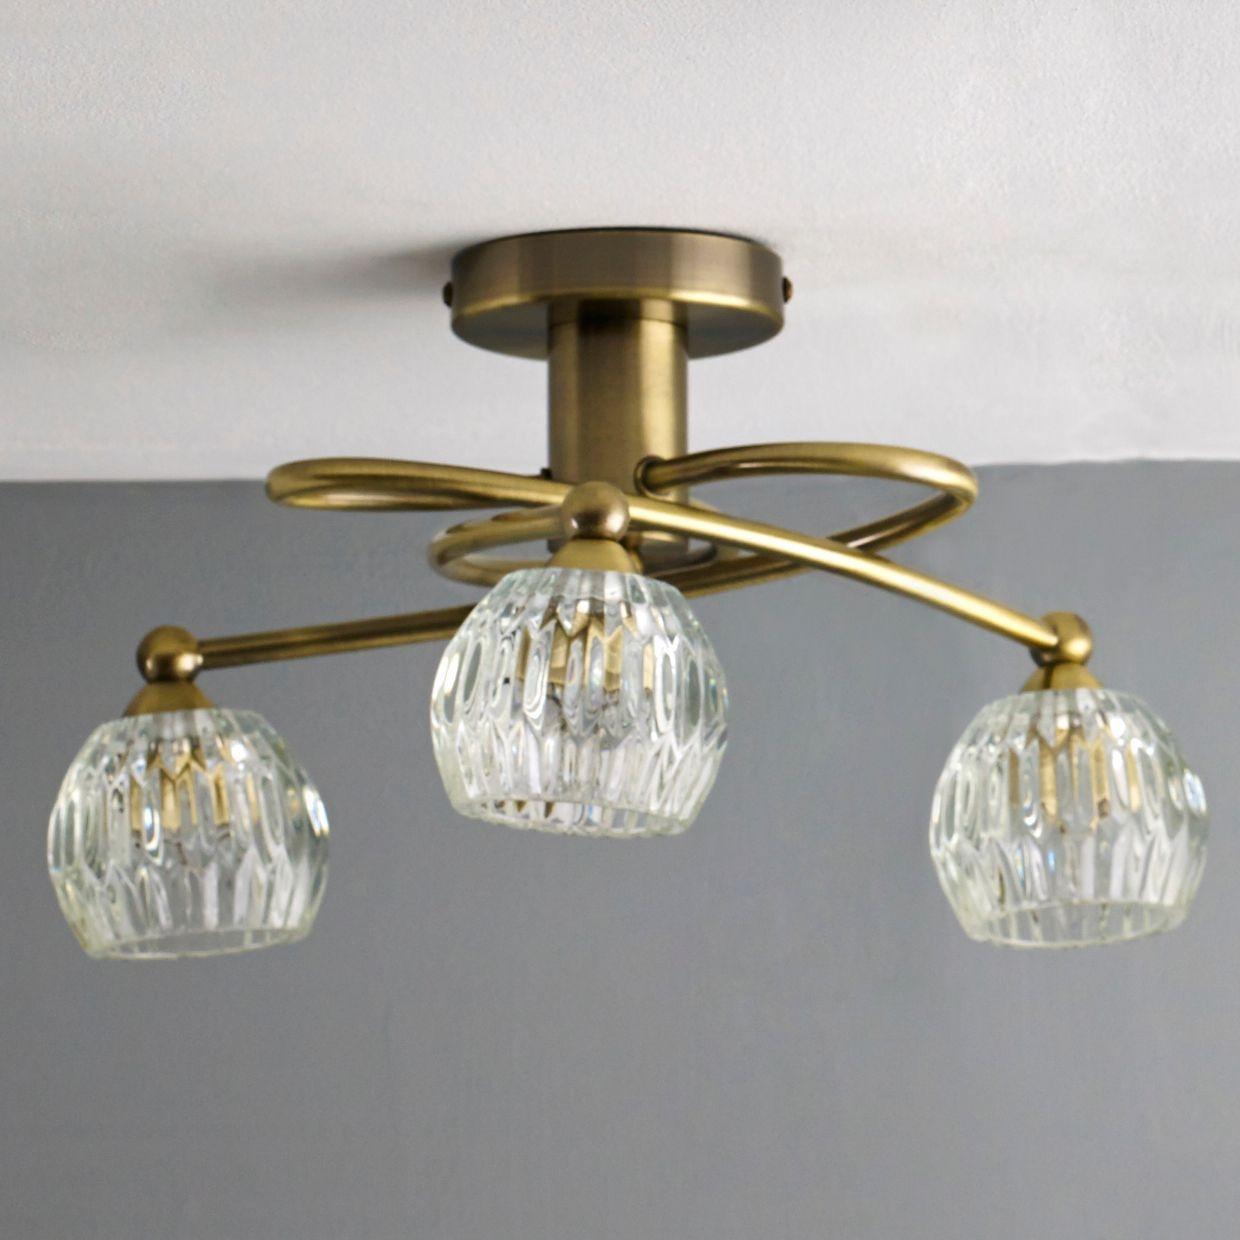 Steyning clear 3 lamp ceiling light departments diy at bq mozeypictures Gallery